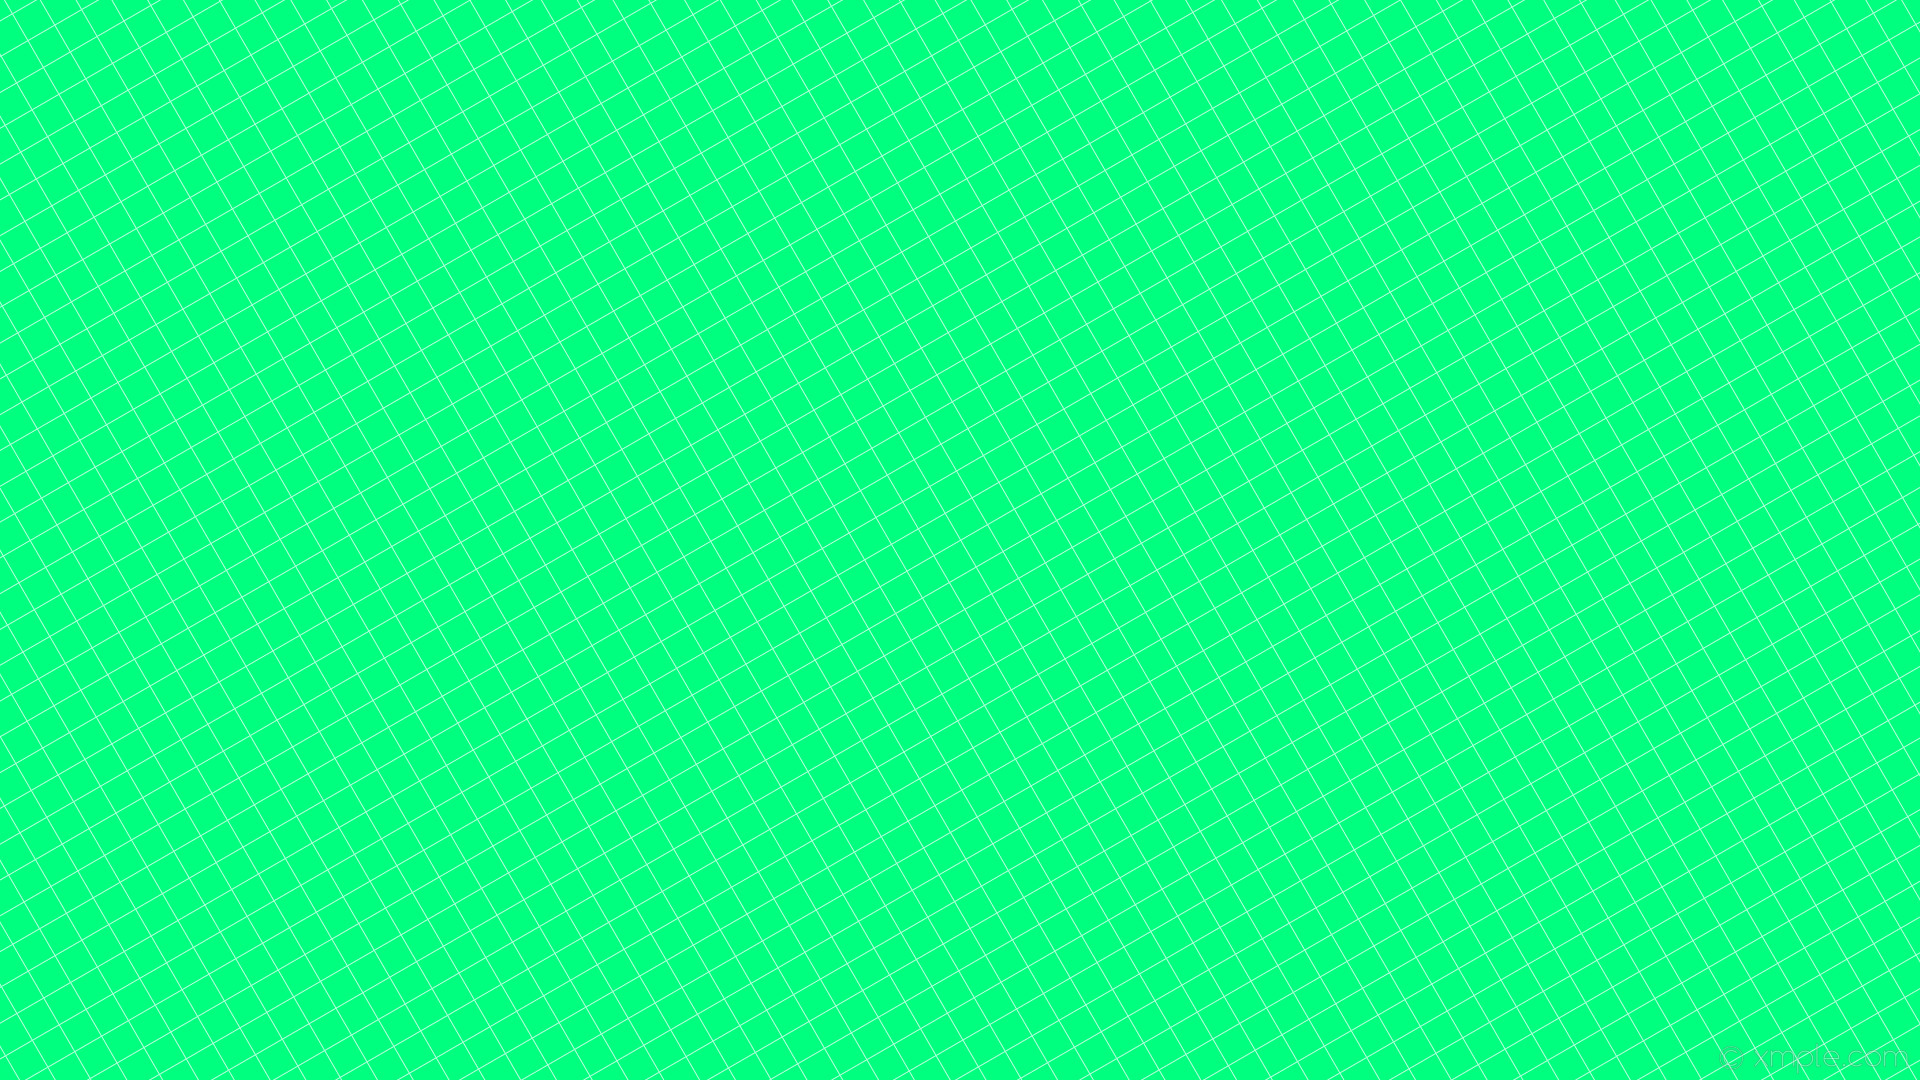 1920x1080 wallpaper green graph paper grid white spring green mint cream #00ff7f  #f5fffa 30°